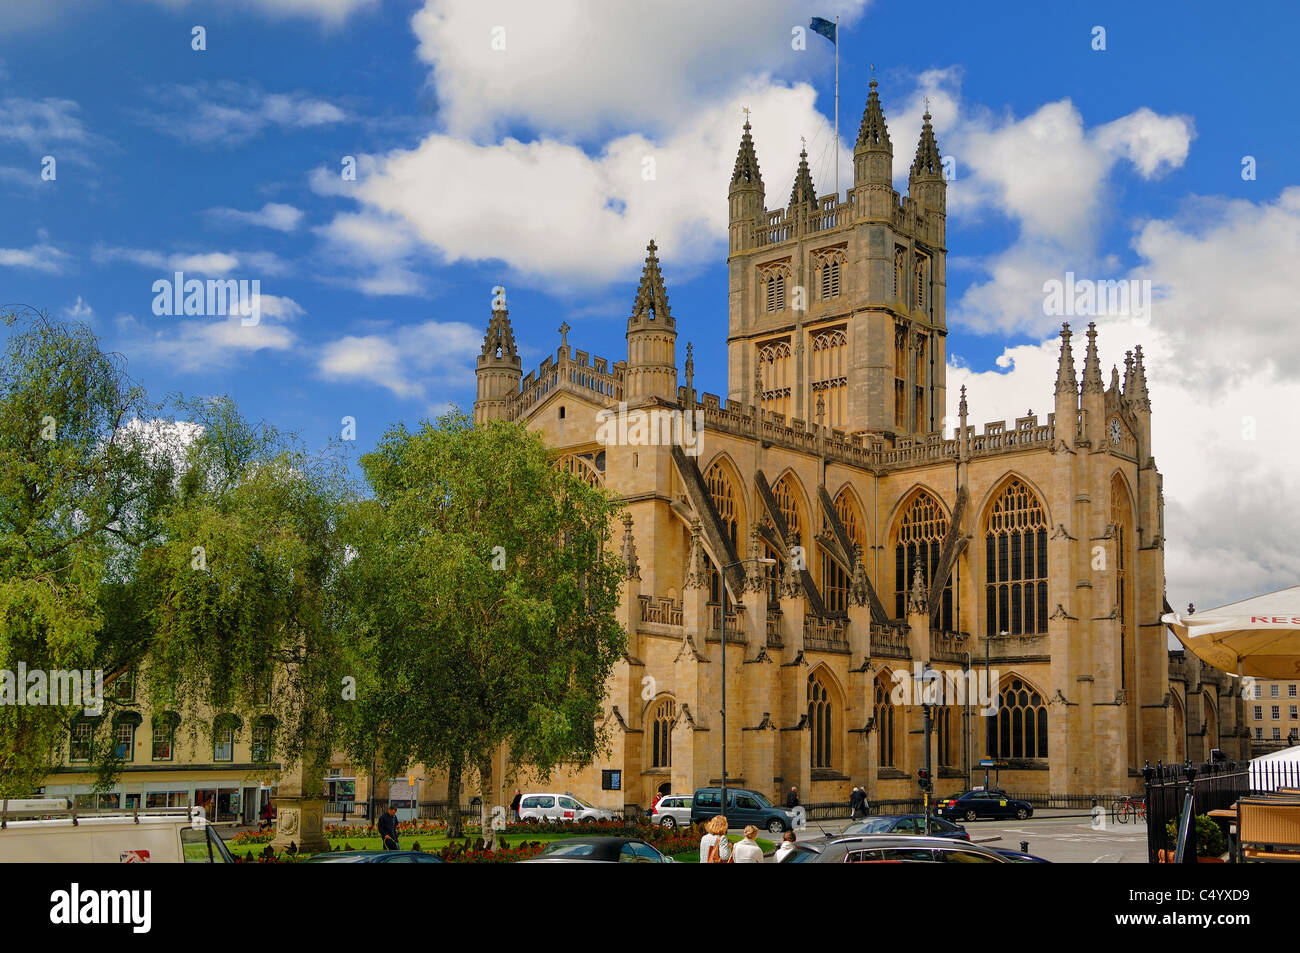 Bath Abbey in the centre of The City of Bath, Somerset, United Kingdom. it was founded in 1499. - Stock Image